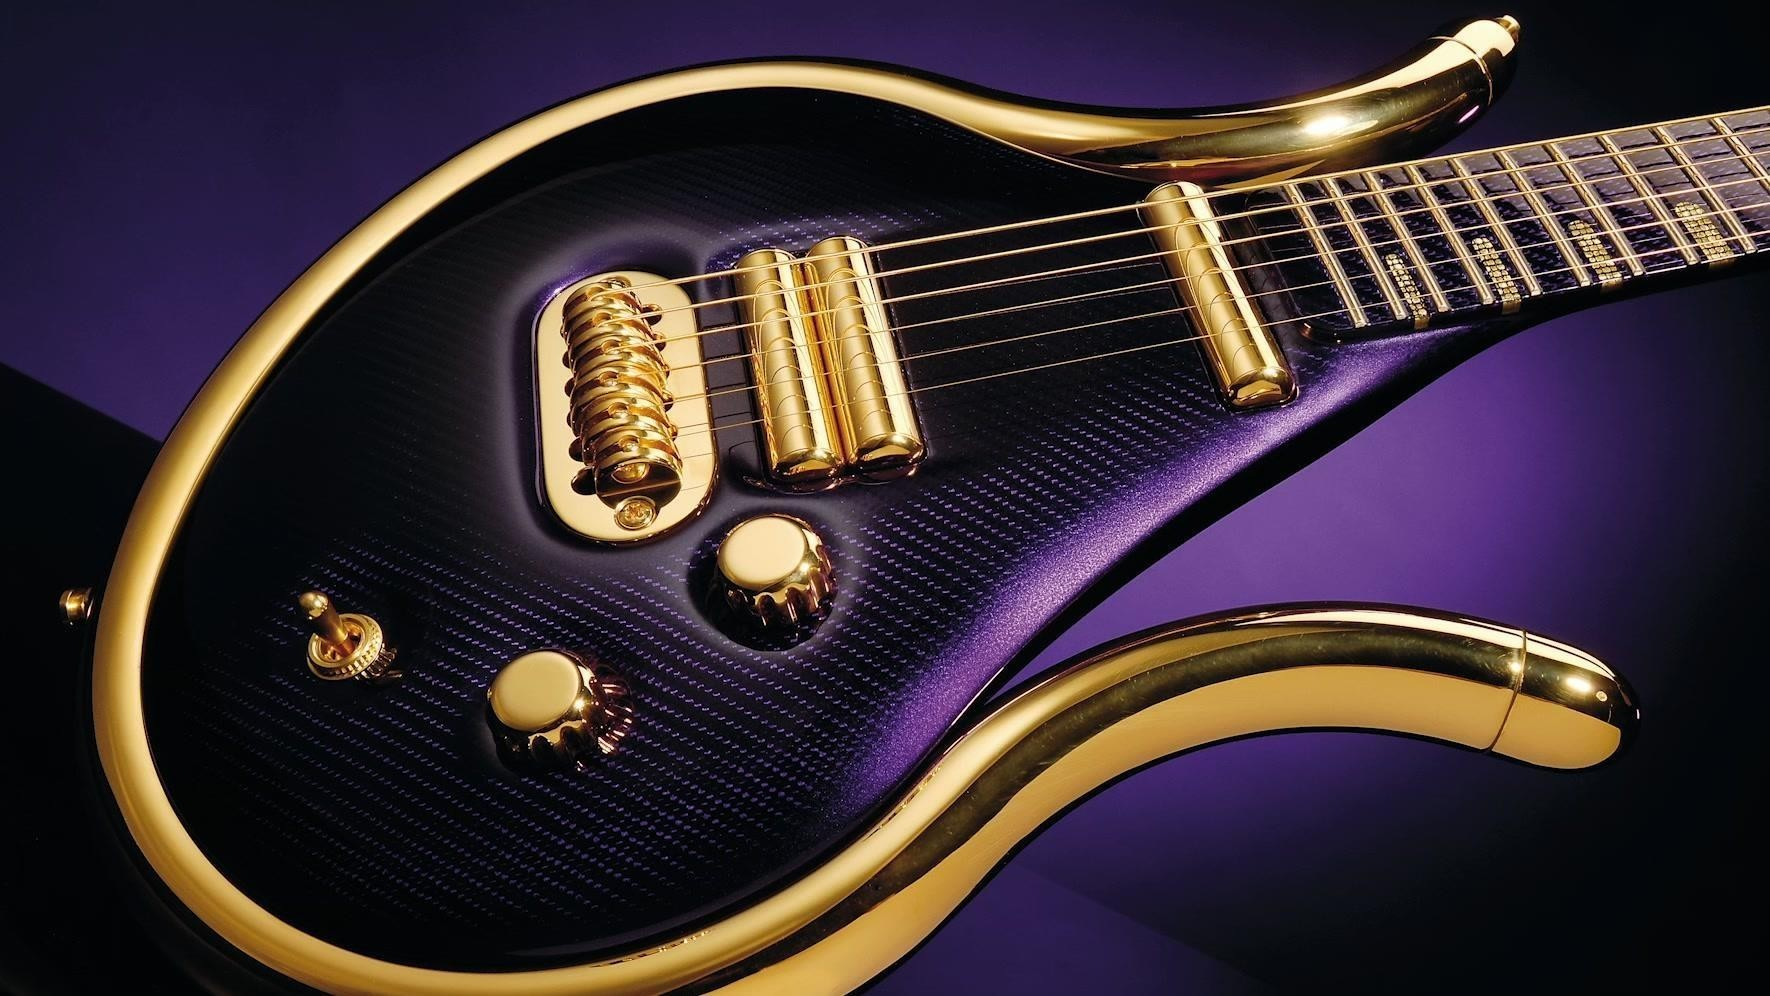 The man who made Prince's last guitar – video